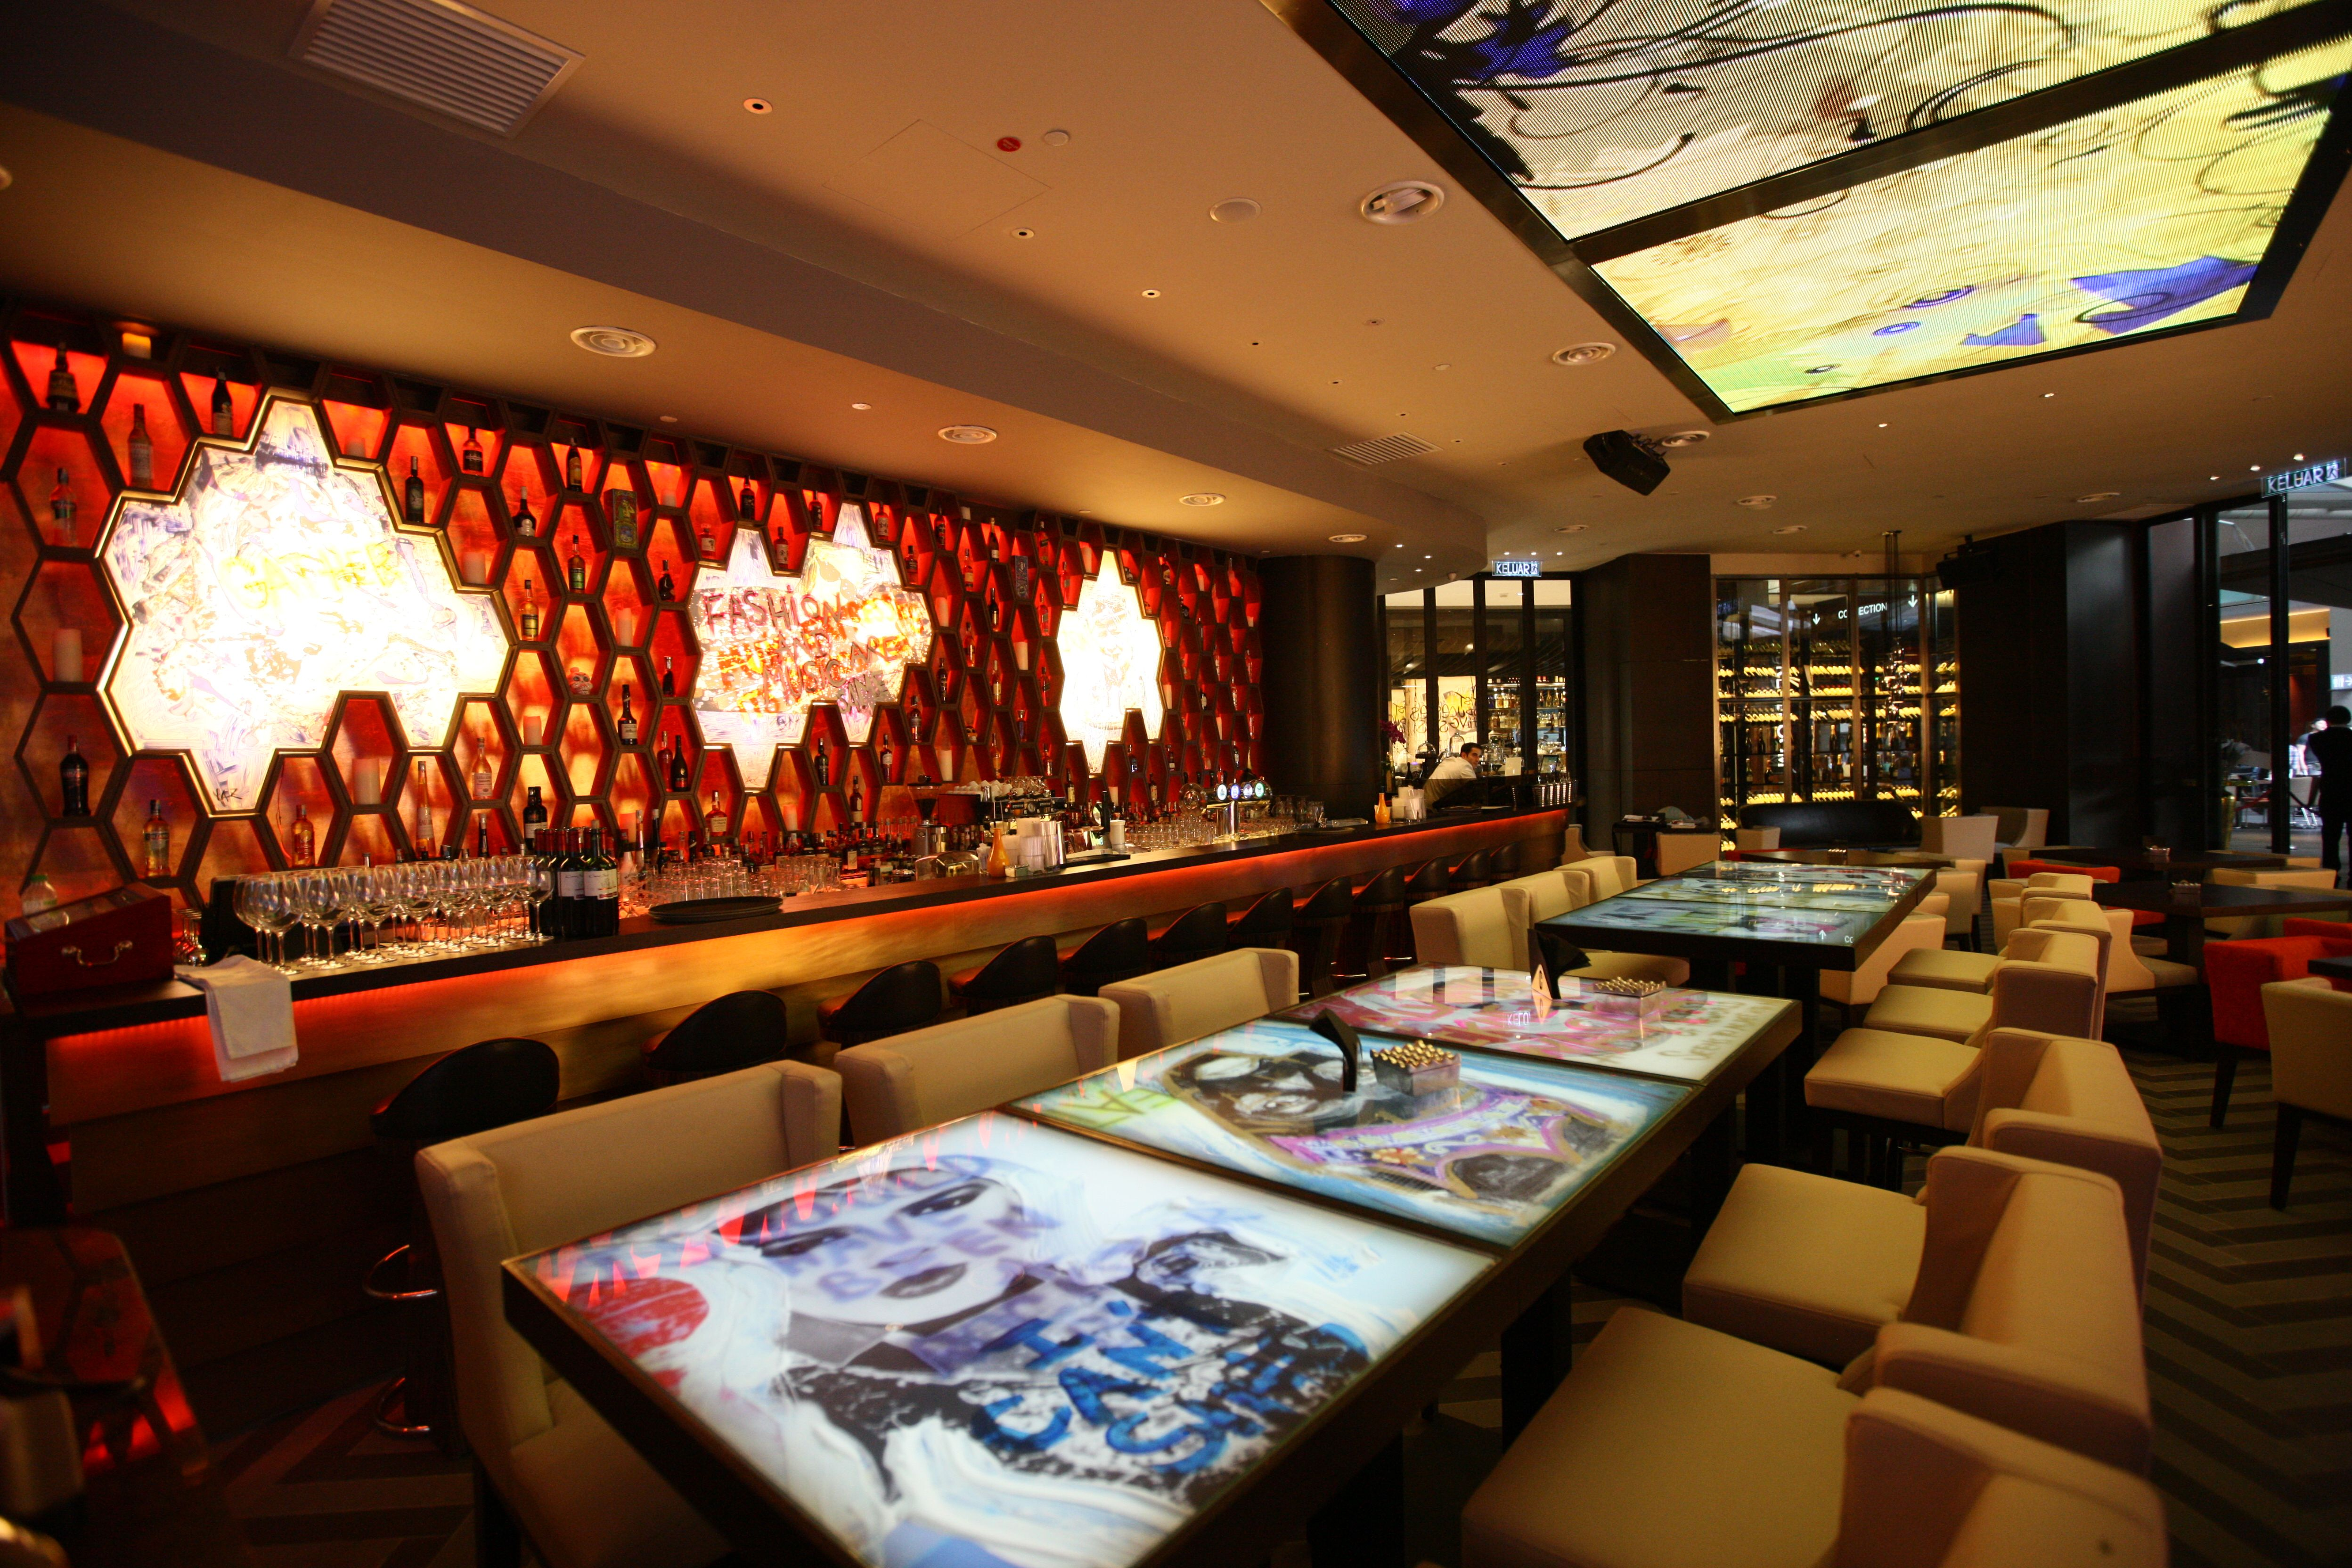 Restaurant Lighting Ideas Restaurant Lighting Design Ideas Regarding Amazing